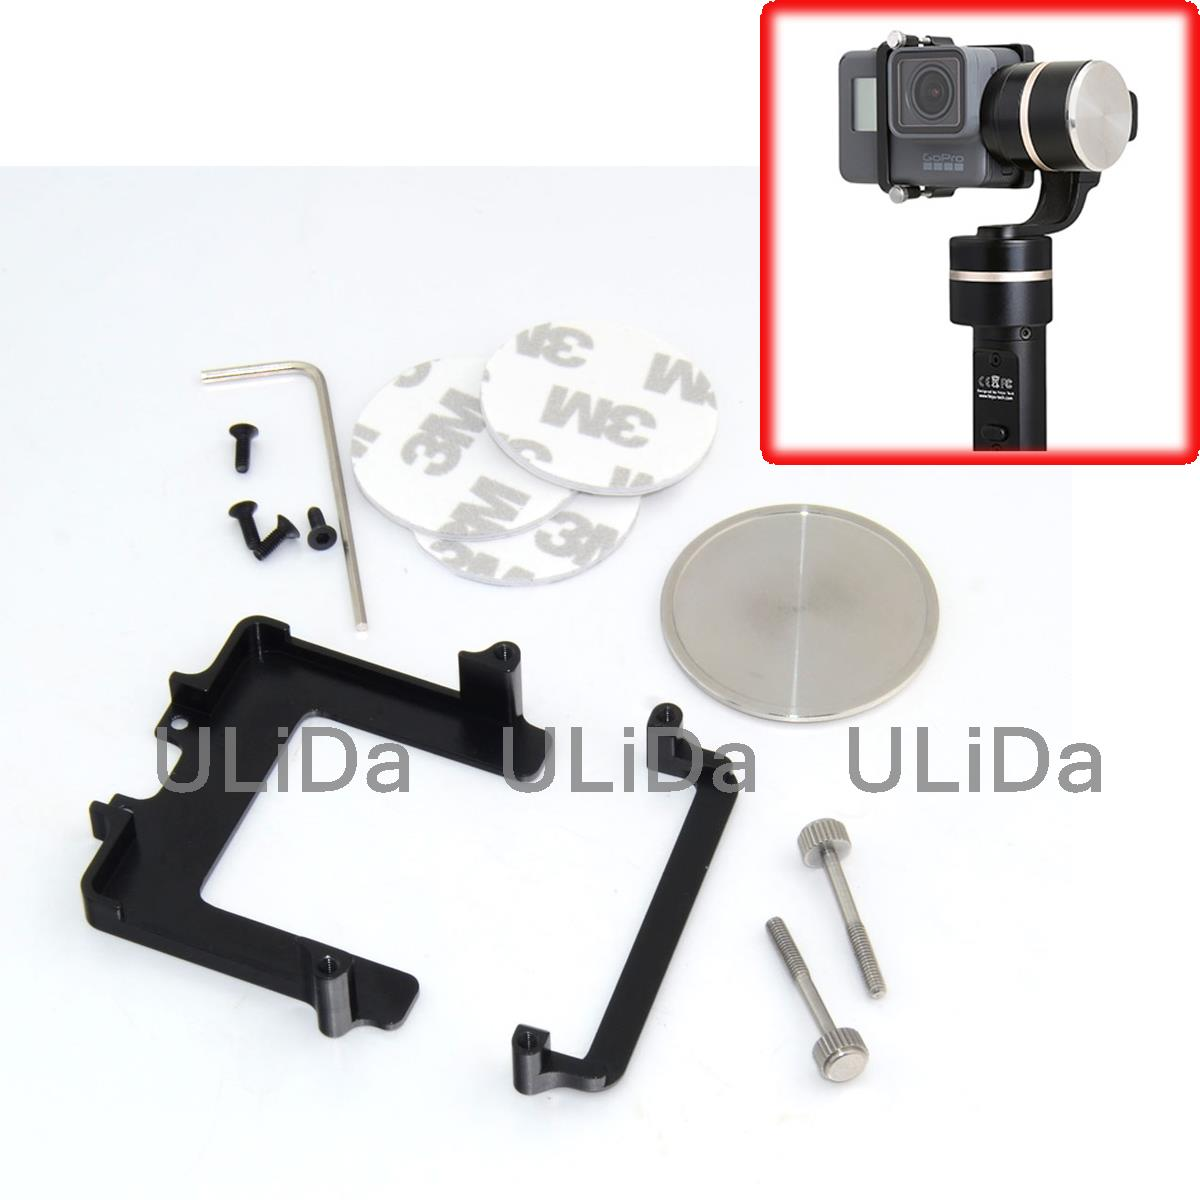 все цены на 44.7mm Adapter for Feiyu G4 Gimbal Replace Hanging Board Plate Mount for GoPro5 Xiaomi Yi Sports Camera онлайн